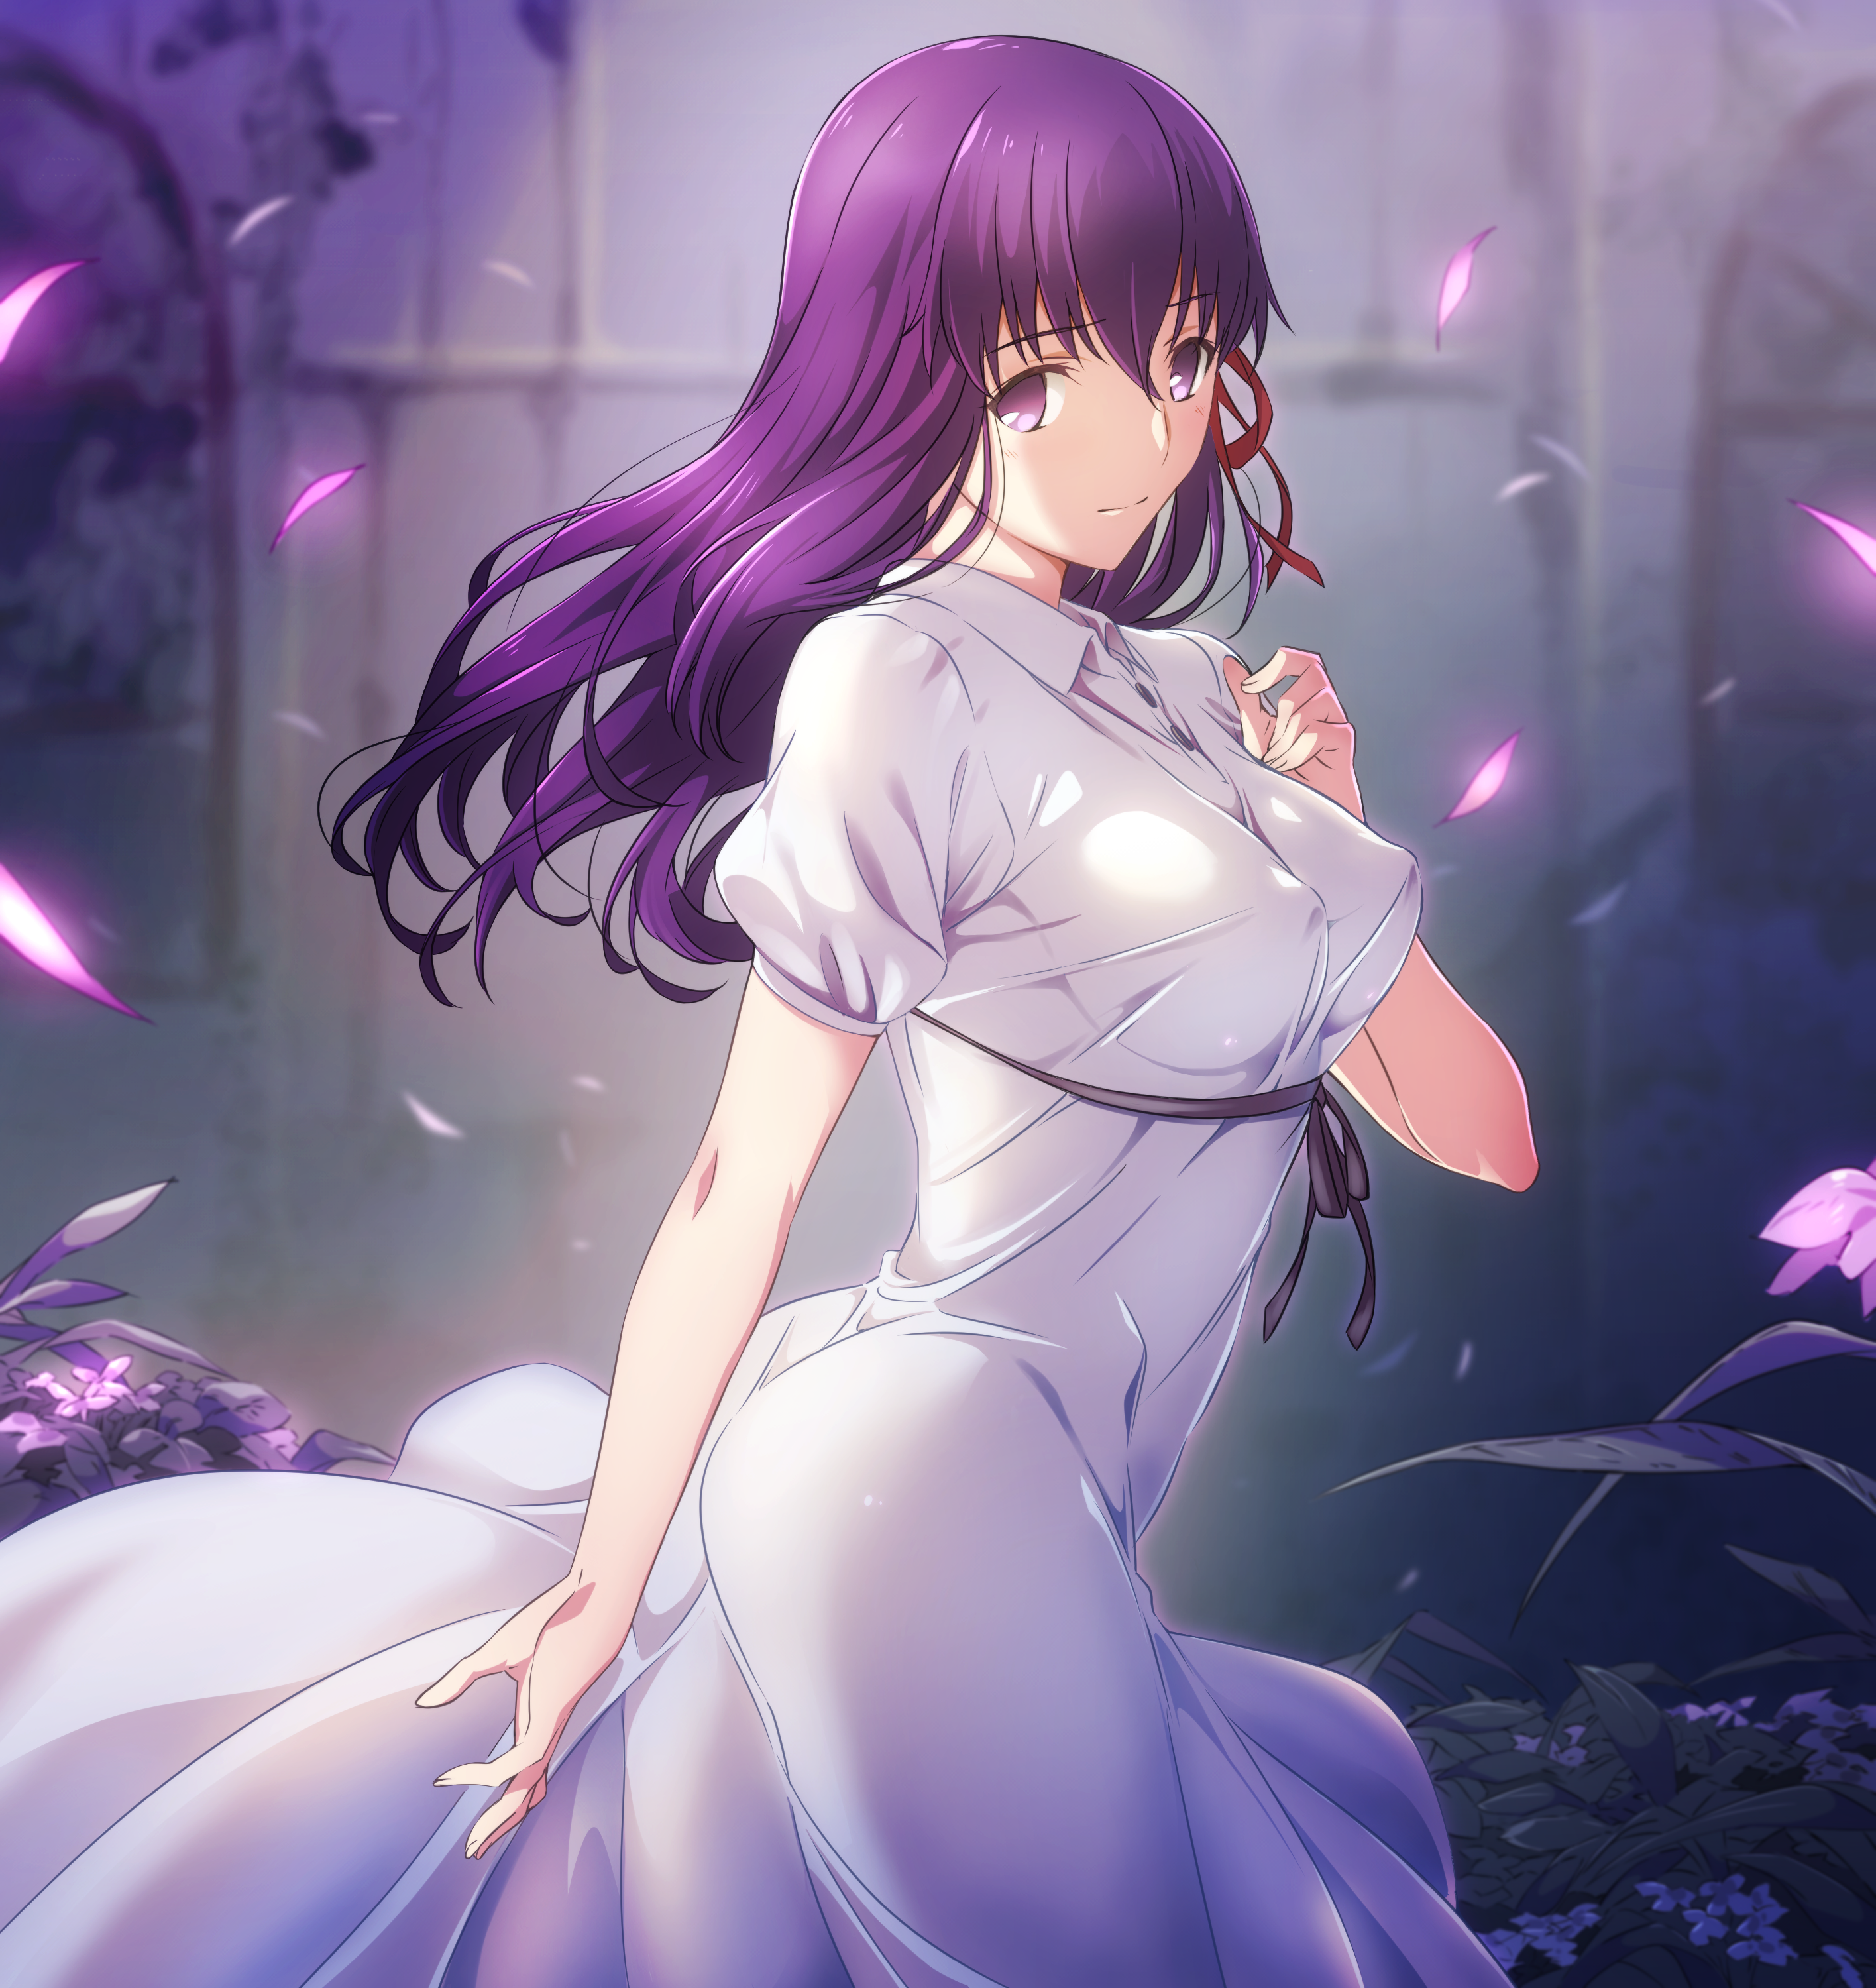 Anime 2831x3000 Fate Series Fate/Stay Night fate/stay night: heaven's feel anime girls digital art long hair violet hair violet eyes white dress big boobs ribbon Sakura Matou